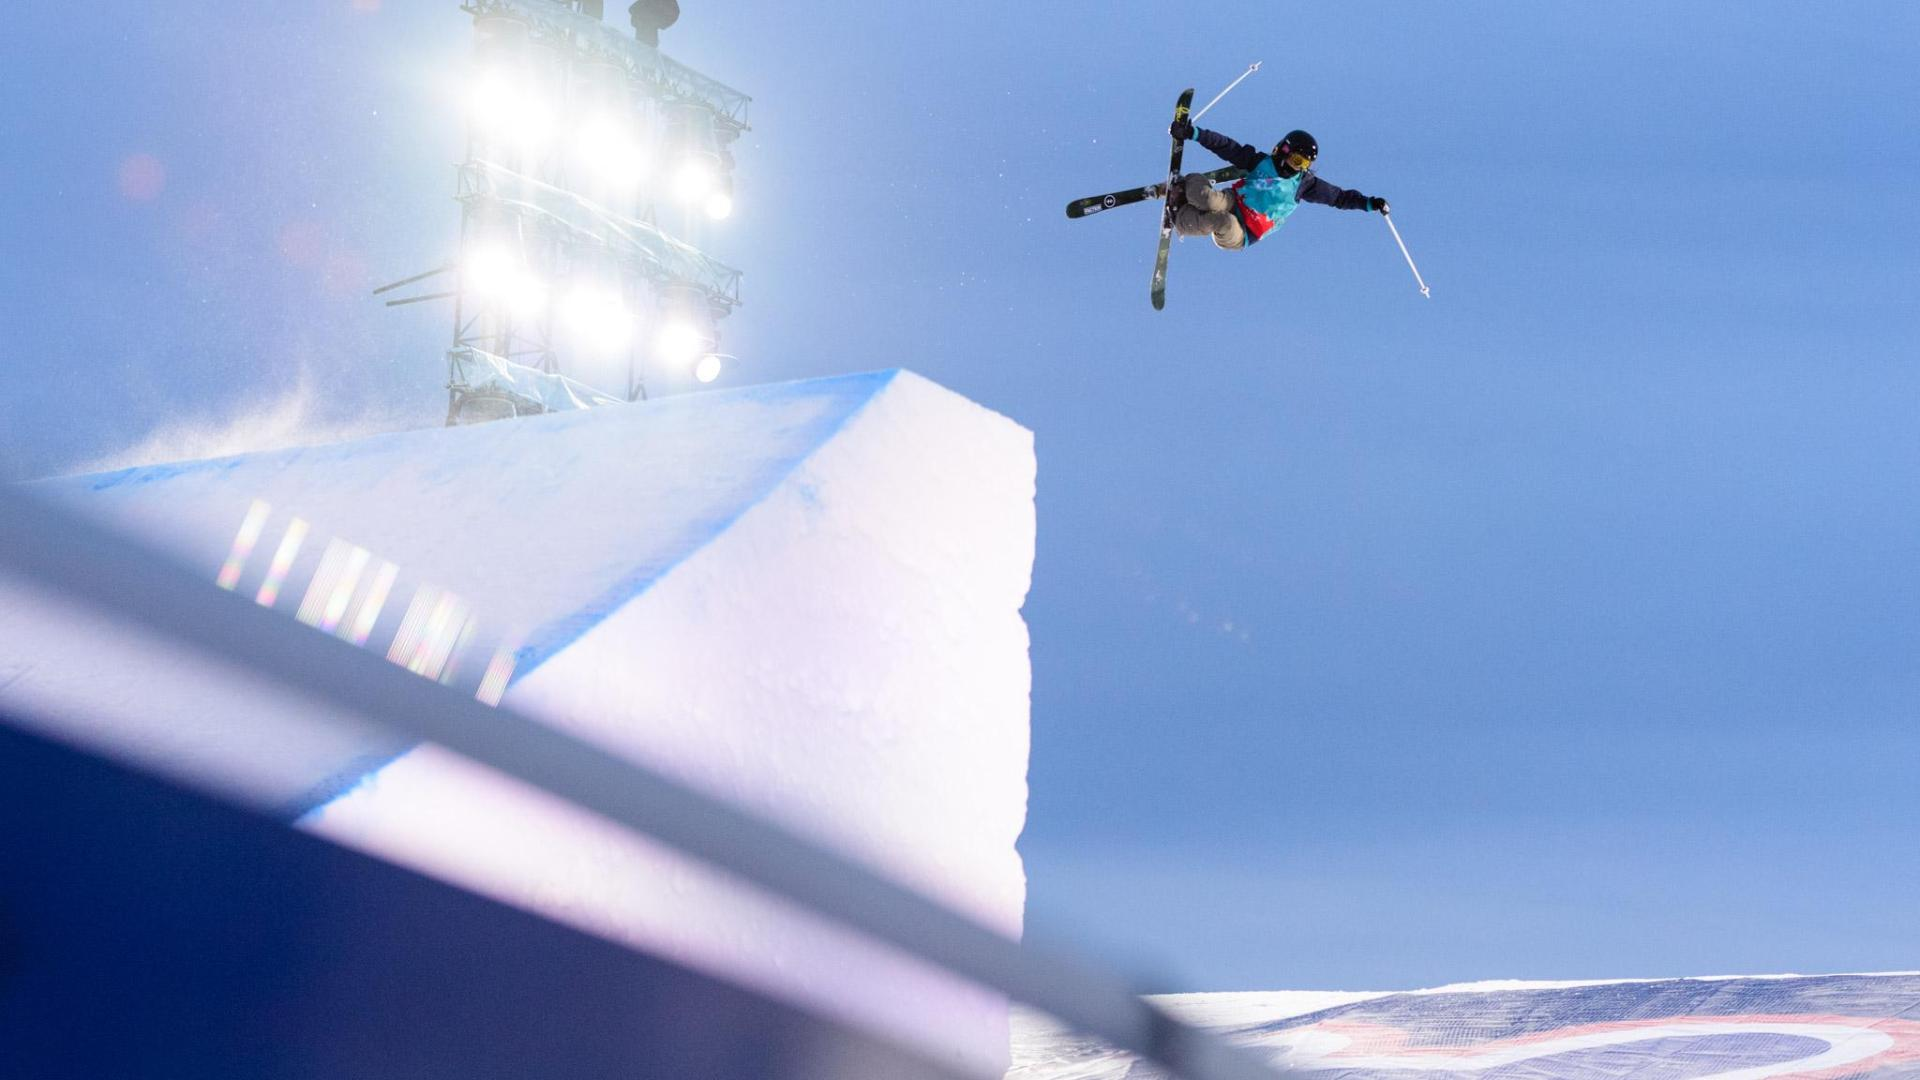 X Games Norwegen 2017 – Mathilde Gremaud doubled sich zu Gold im Big Air Contest